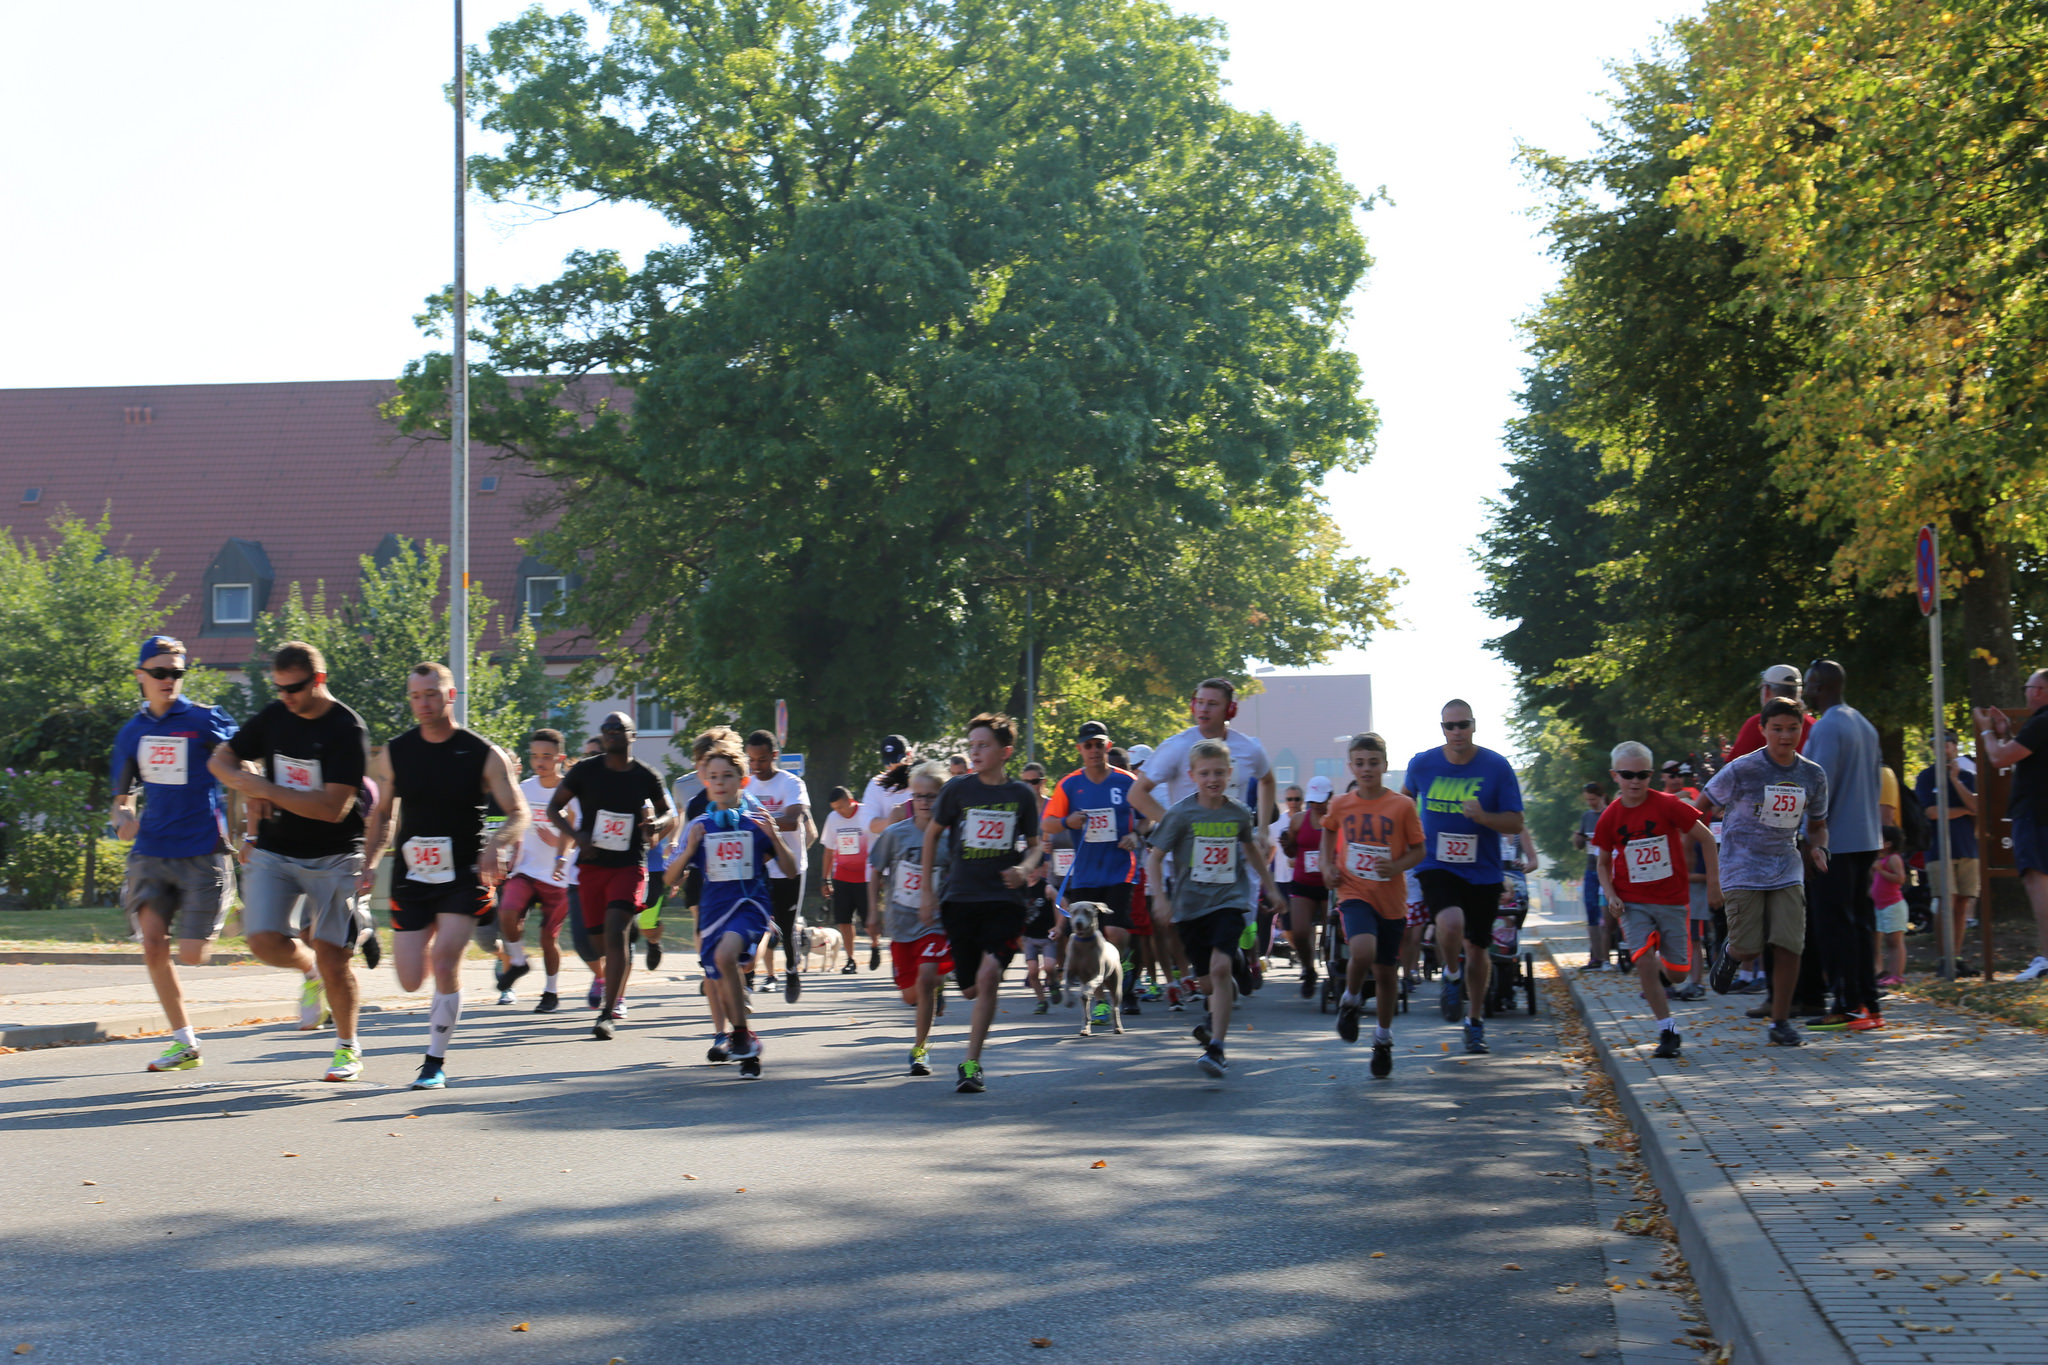 U.S. Army Garrison Ansbach community members begin the five-kilometer Back-to-School Fun Run.